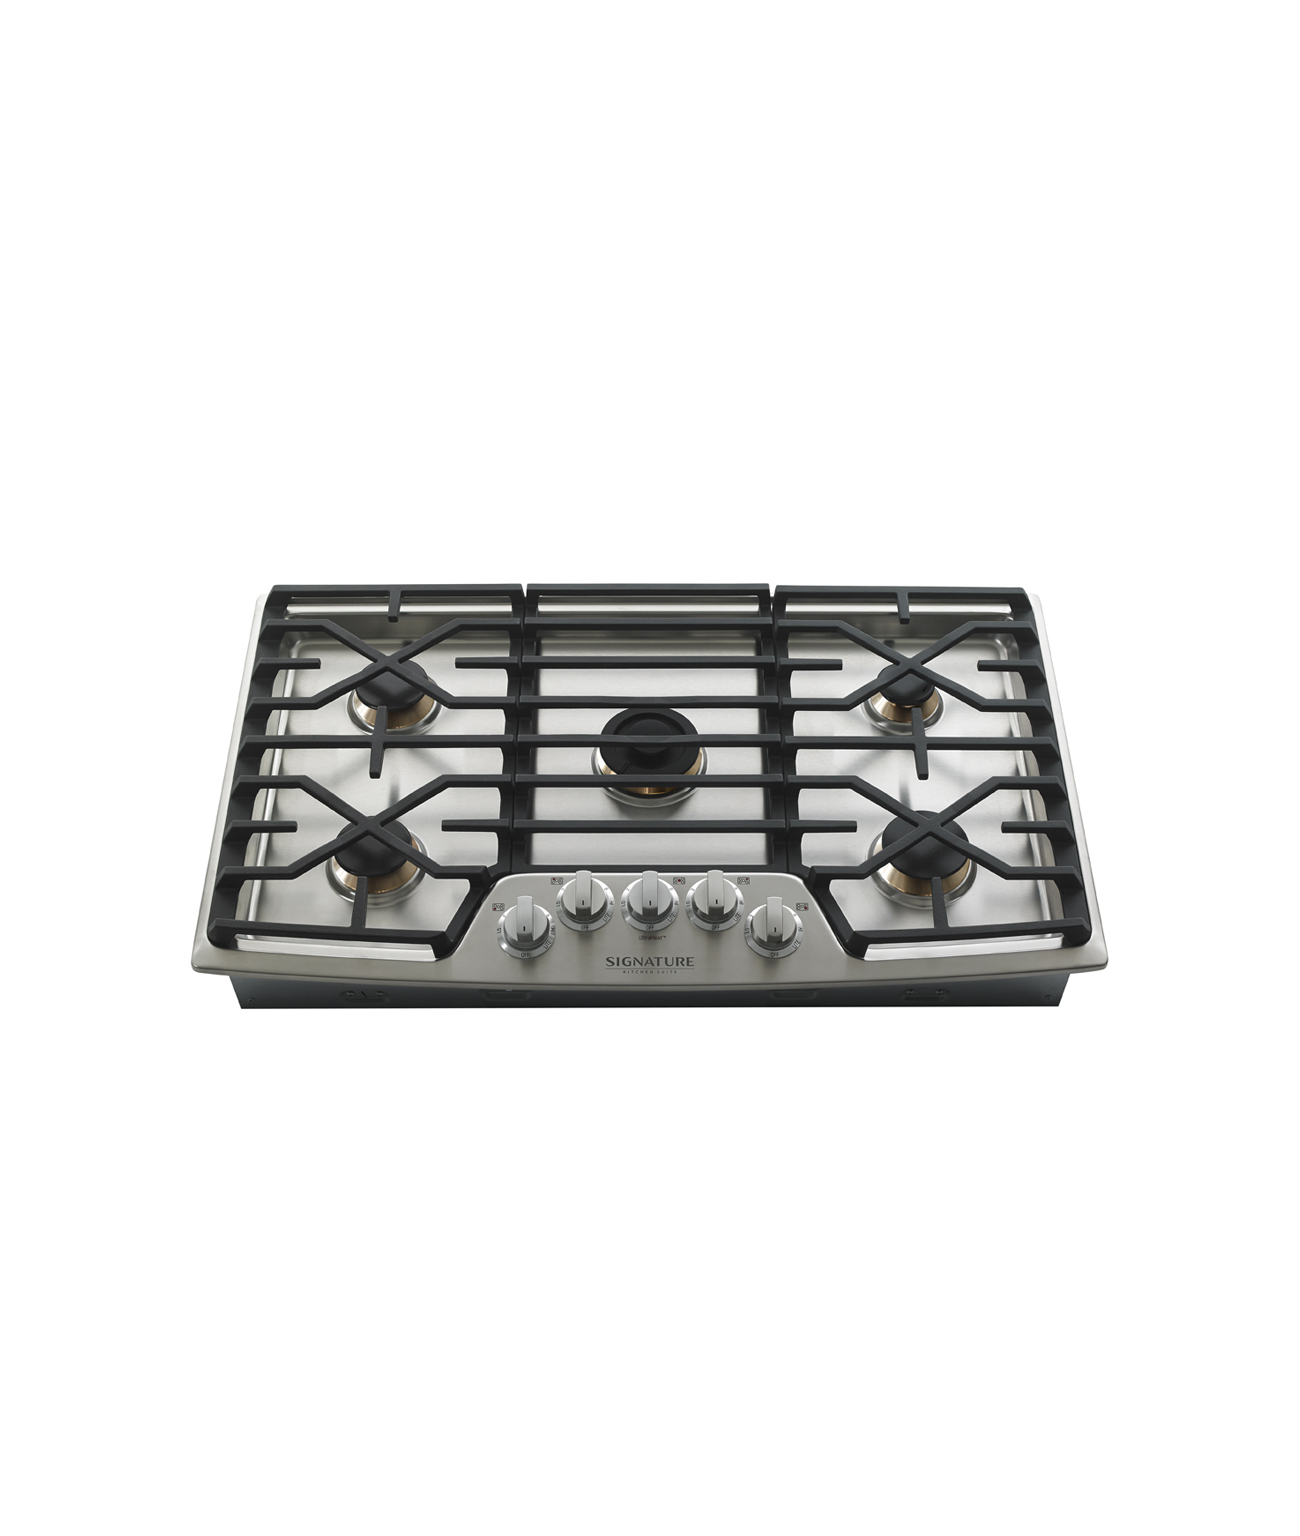 Surface de cuisson au gaz 76 cm | Signature Kitchen Suite